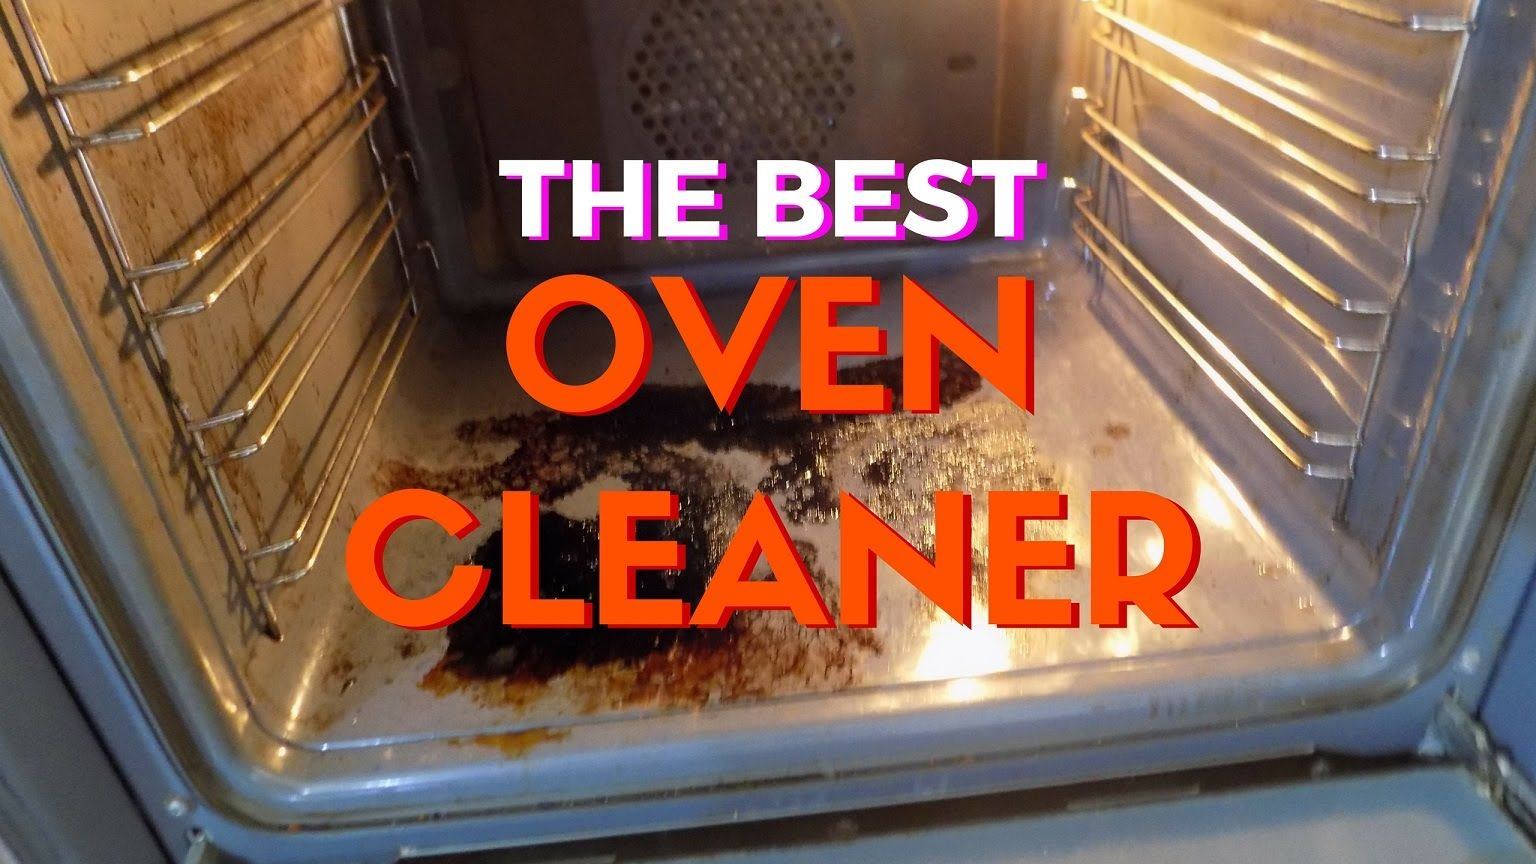 THE BEST OVEN CLEANER